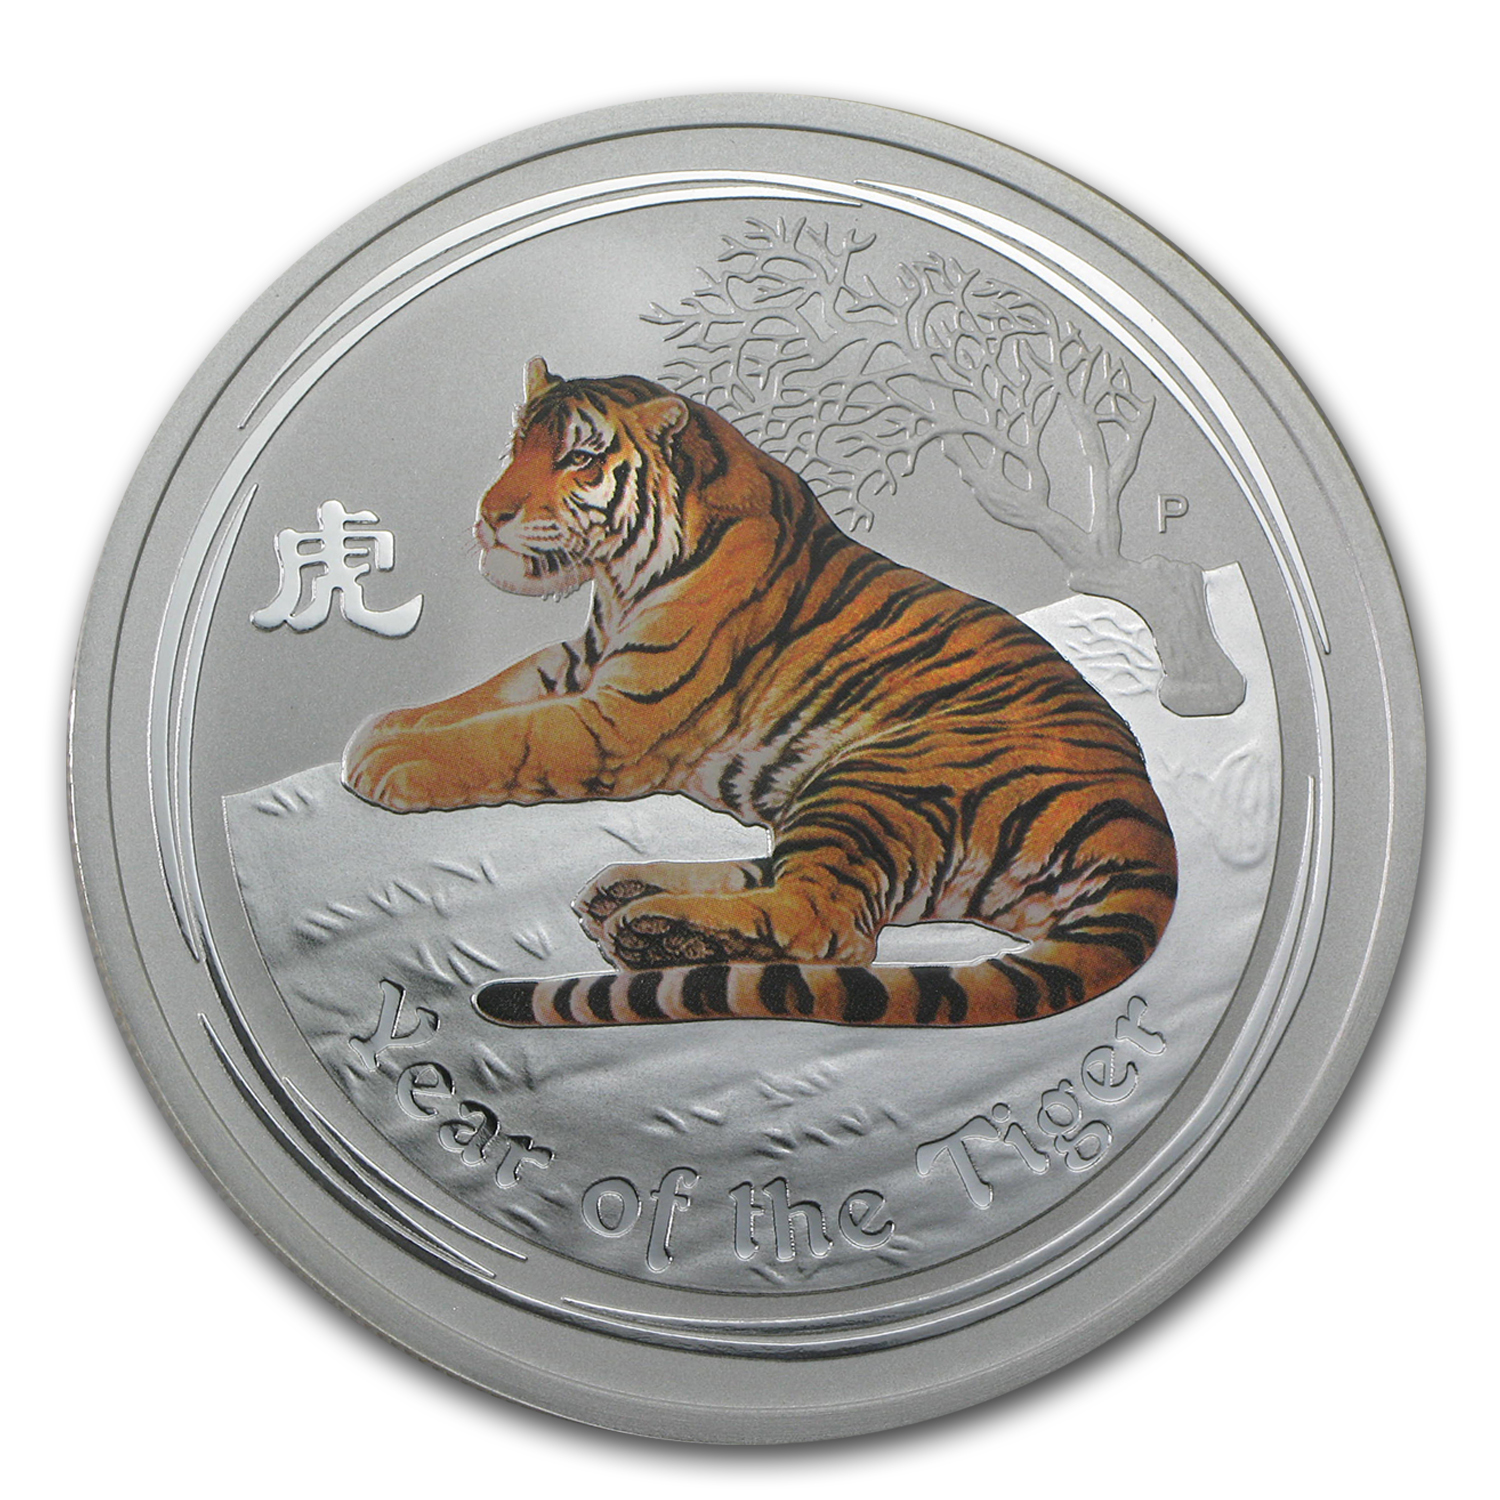 2010 2 oz Silver Australian Year of the Tiger (ANDA, Colorized)